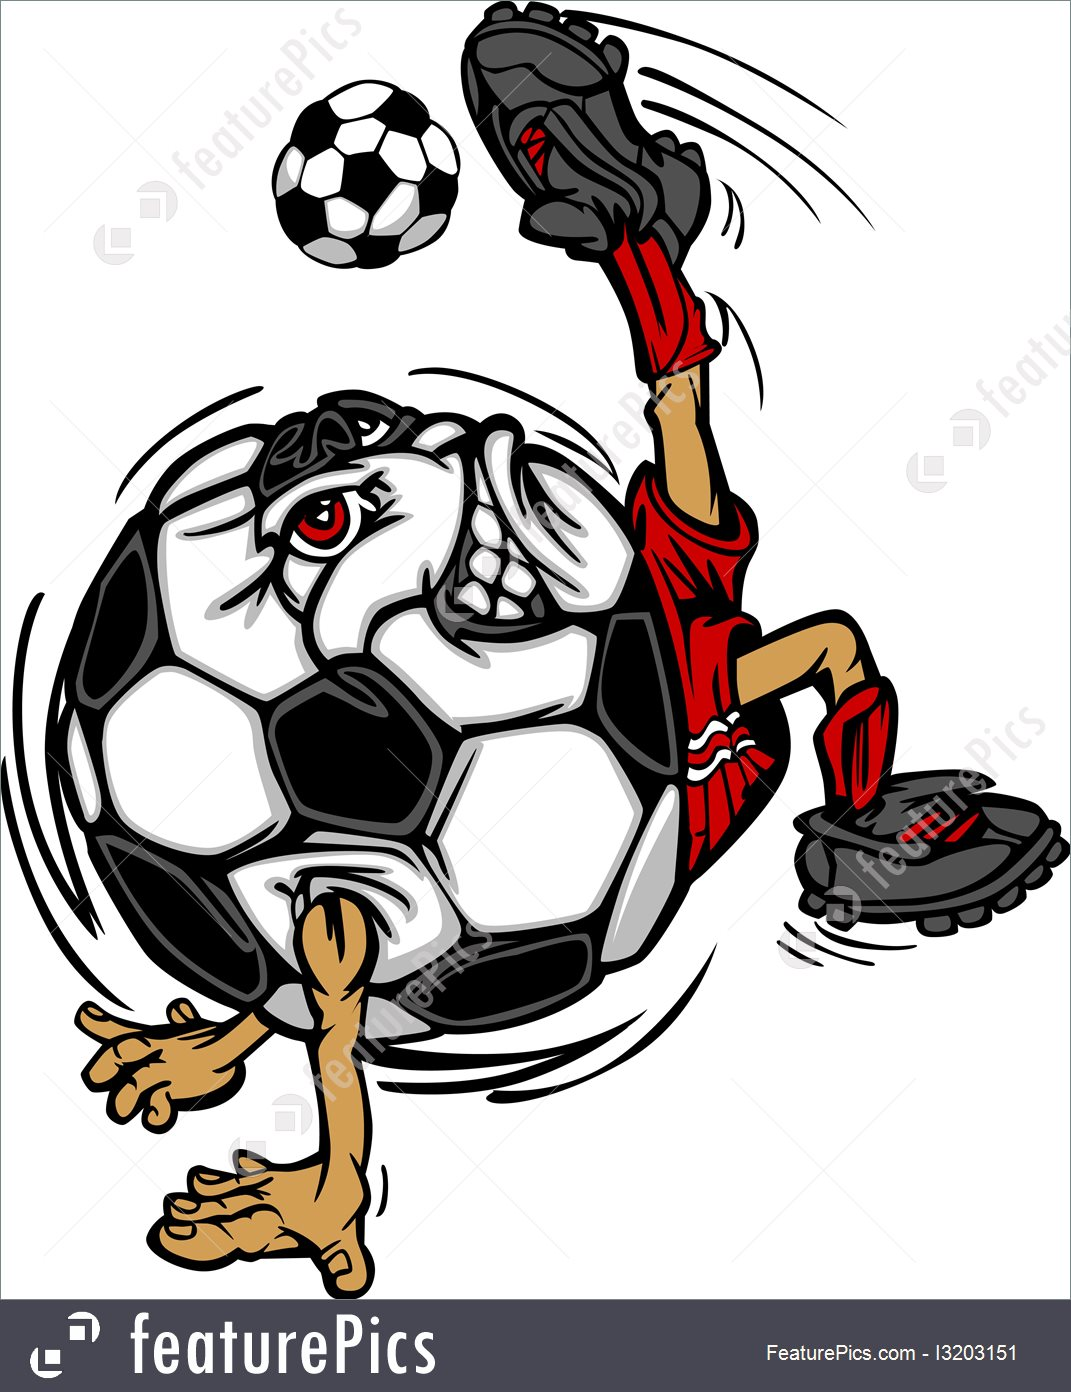 1071x1392 Illustration Of Soccer Football Ball Player Cartoon